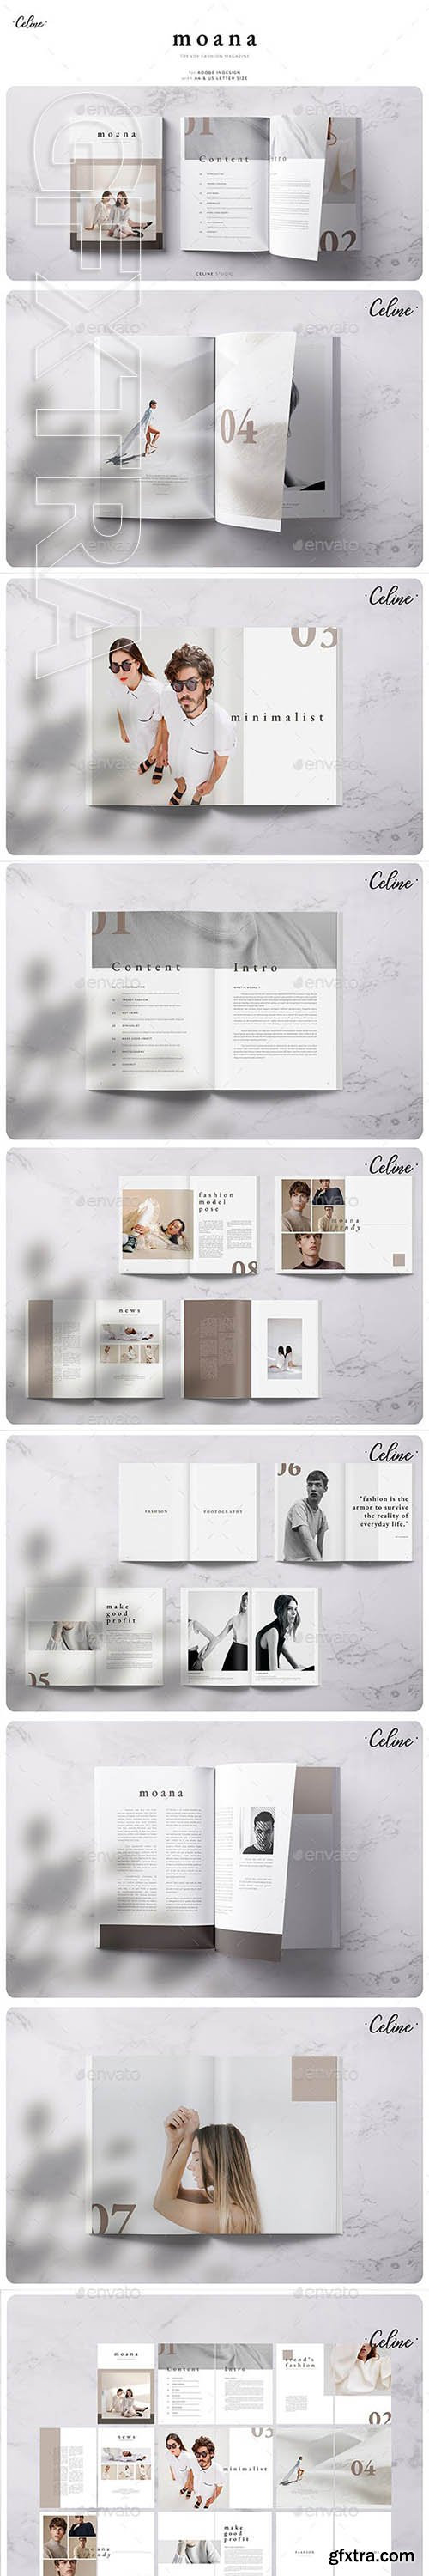 CreativeMarket - Photography Lookbook 3789641